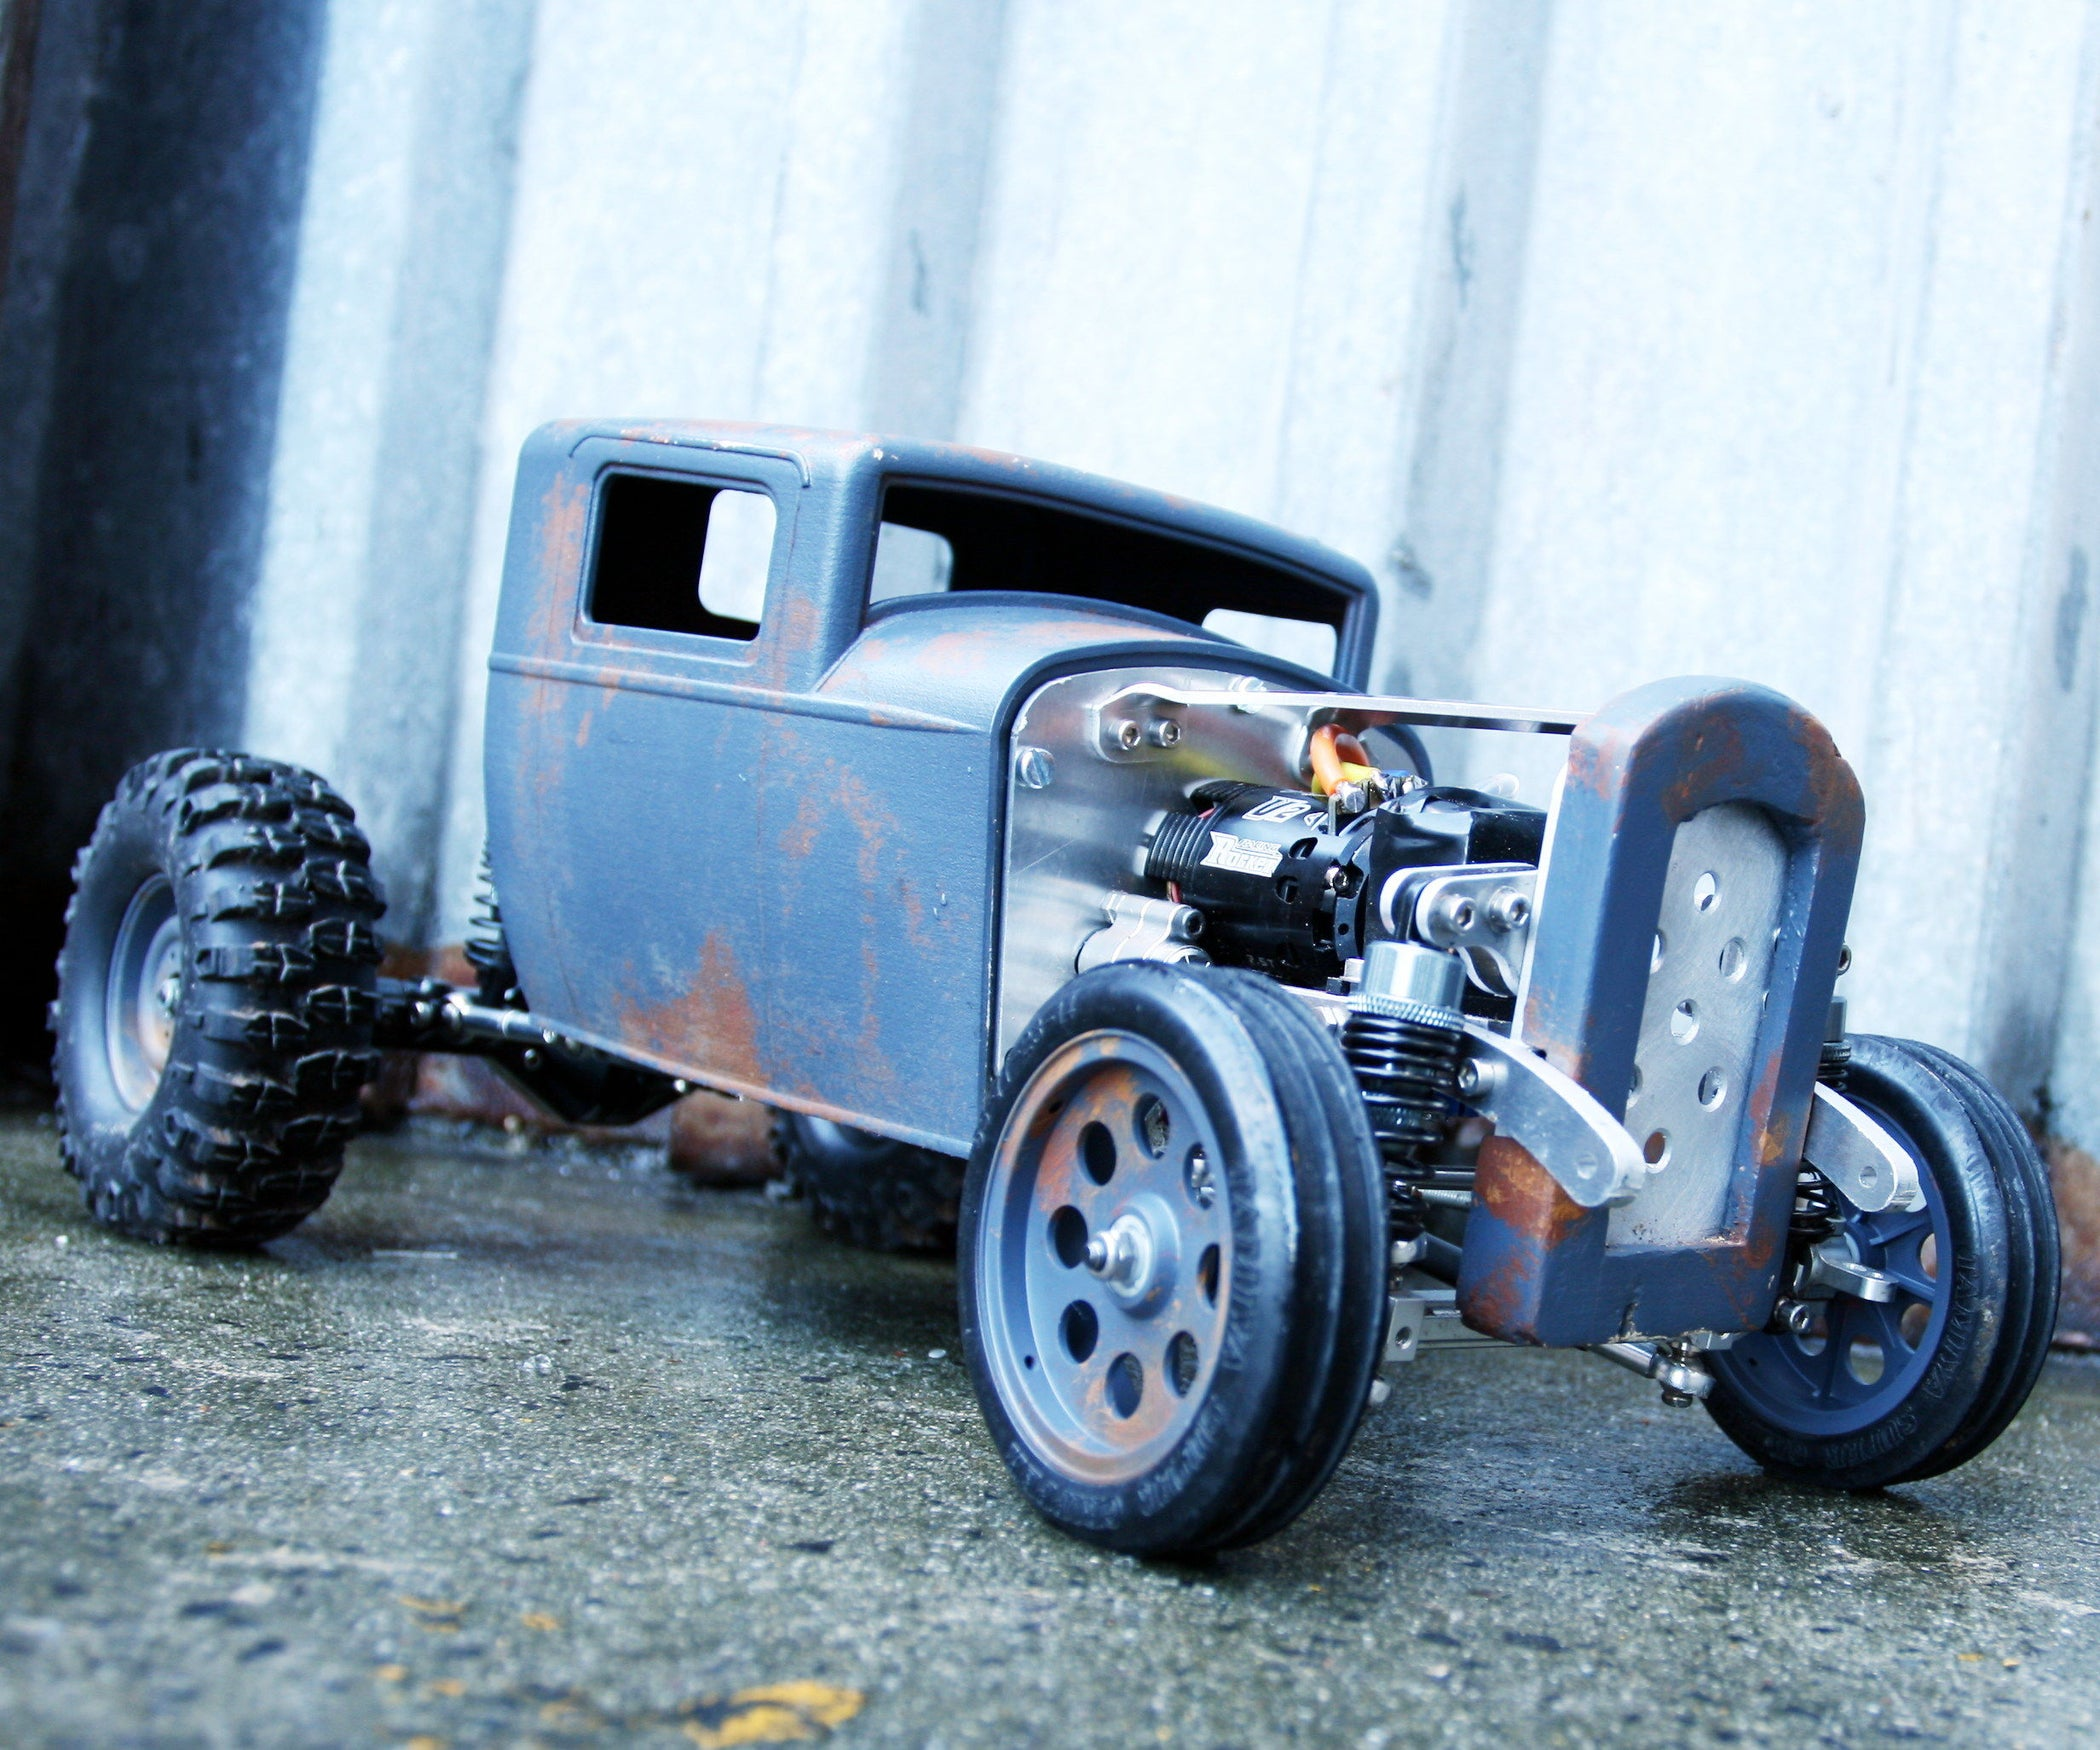 Scratch Build An RC Car With CAD And Rapid Prototyping: 13